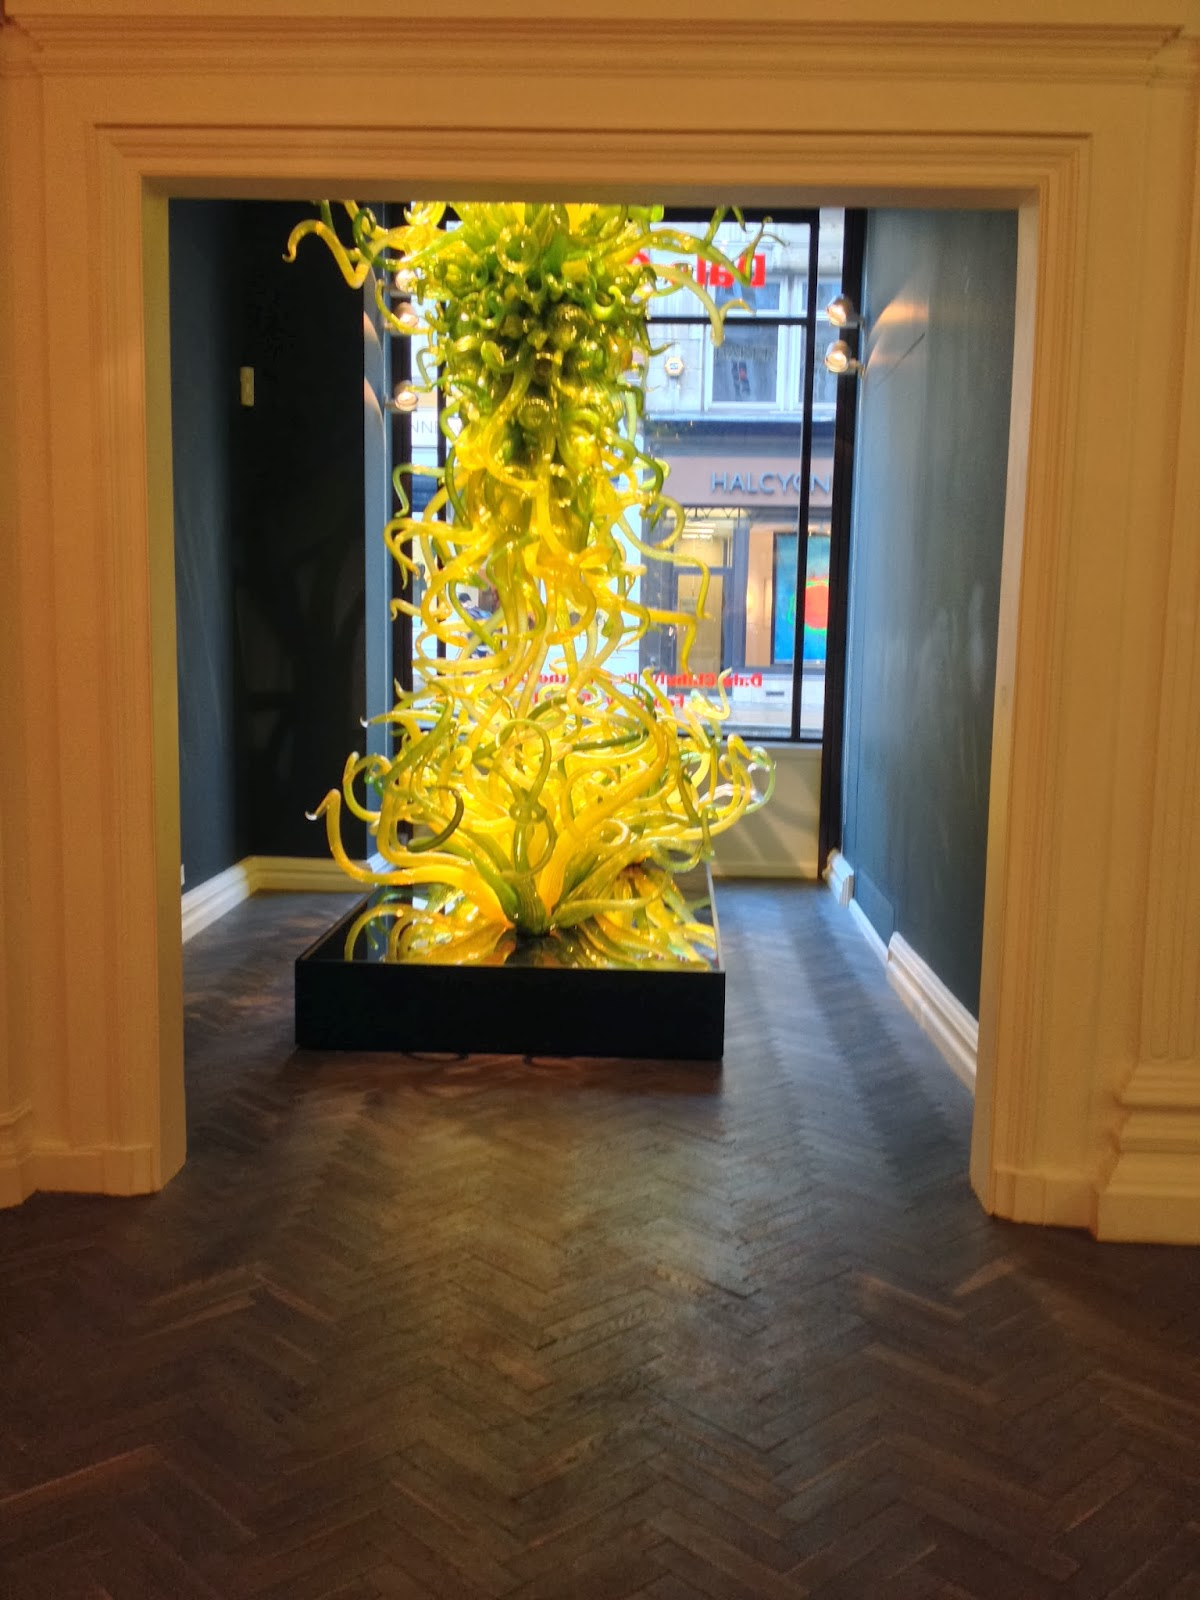 {Erin Out and About} Dale Chihuly Exhibit at Halcyon Gallery